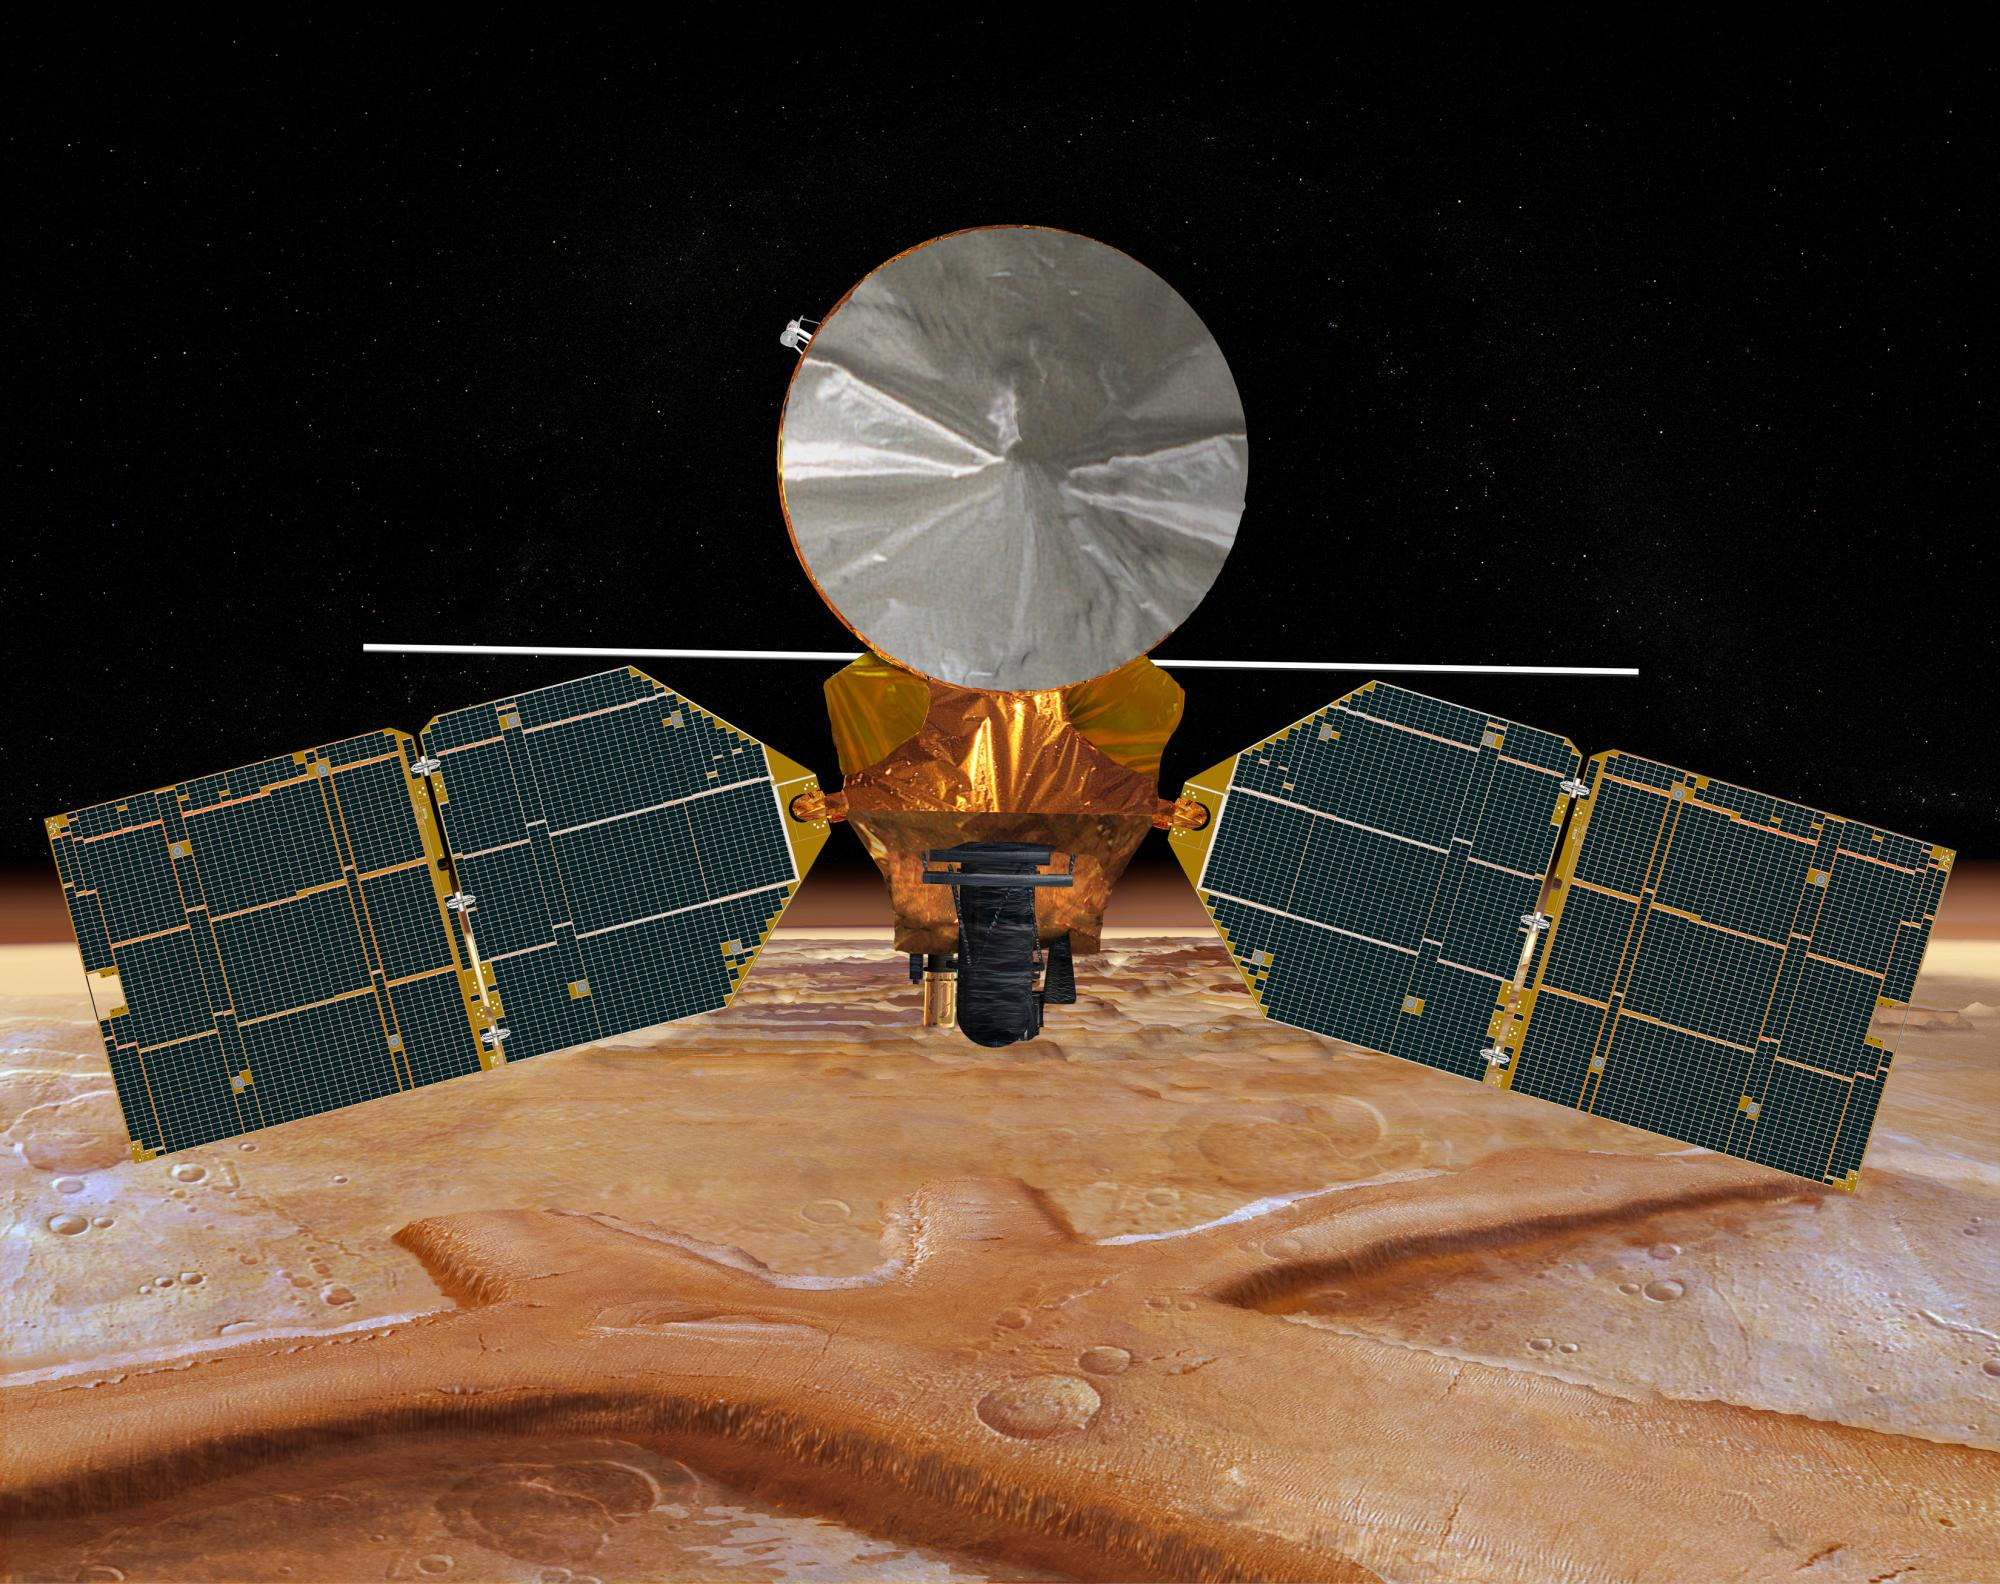 The HiRISE camera aboard NASA's Mars Reconnaissance Orbiter will point toward the comet to get a snapshot of its fly-by.